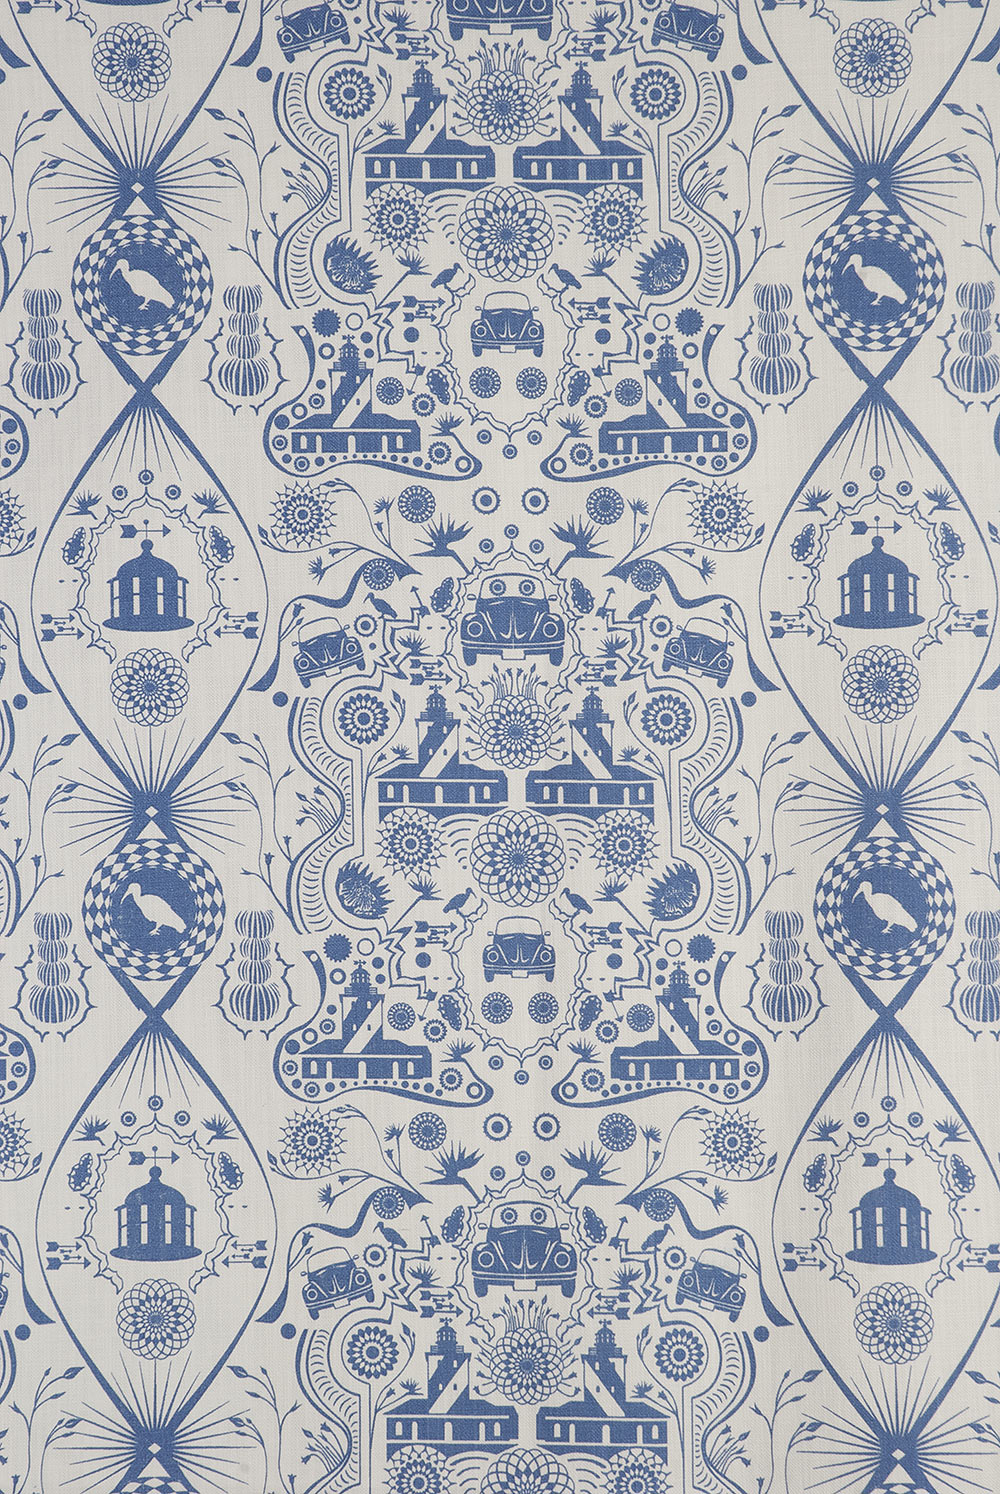 Decorative pattern for fabric